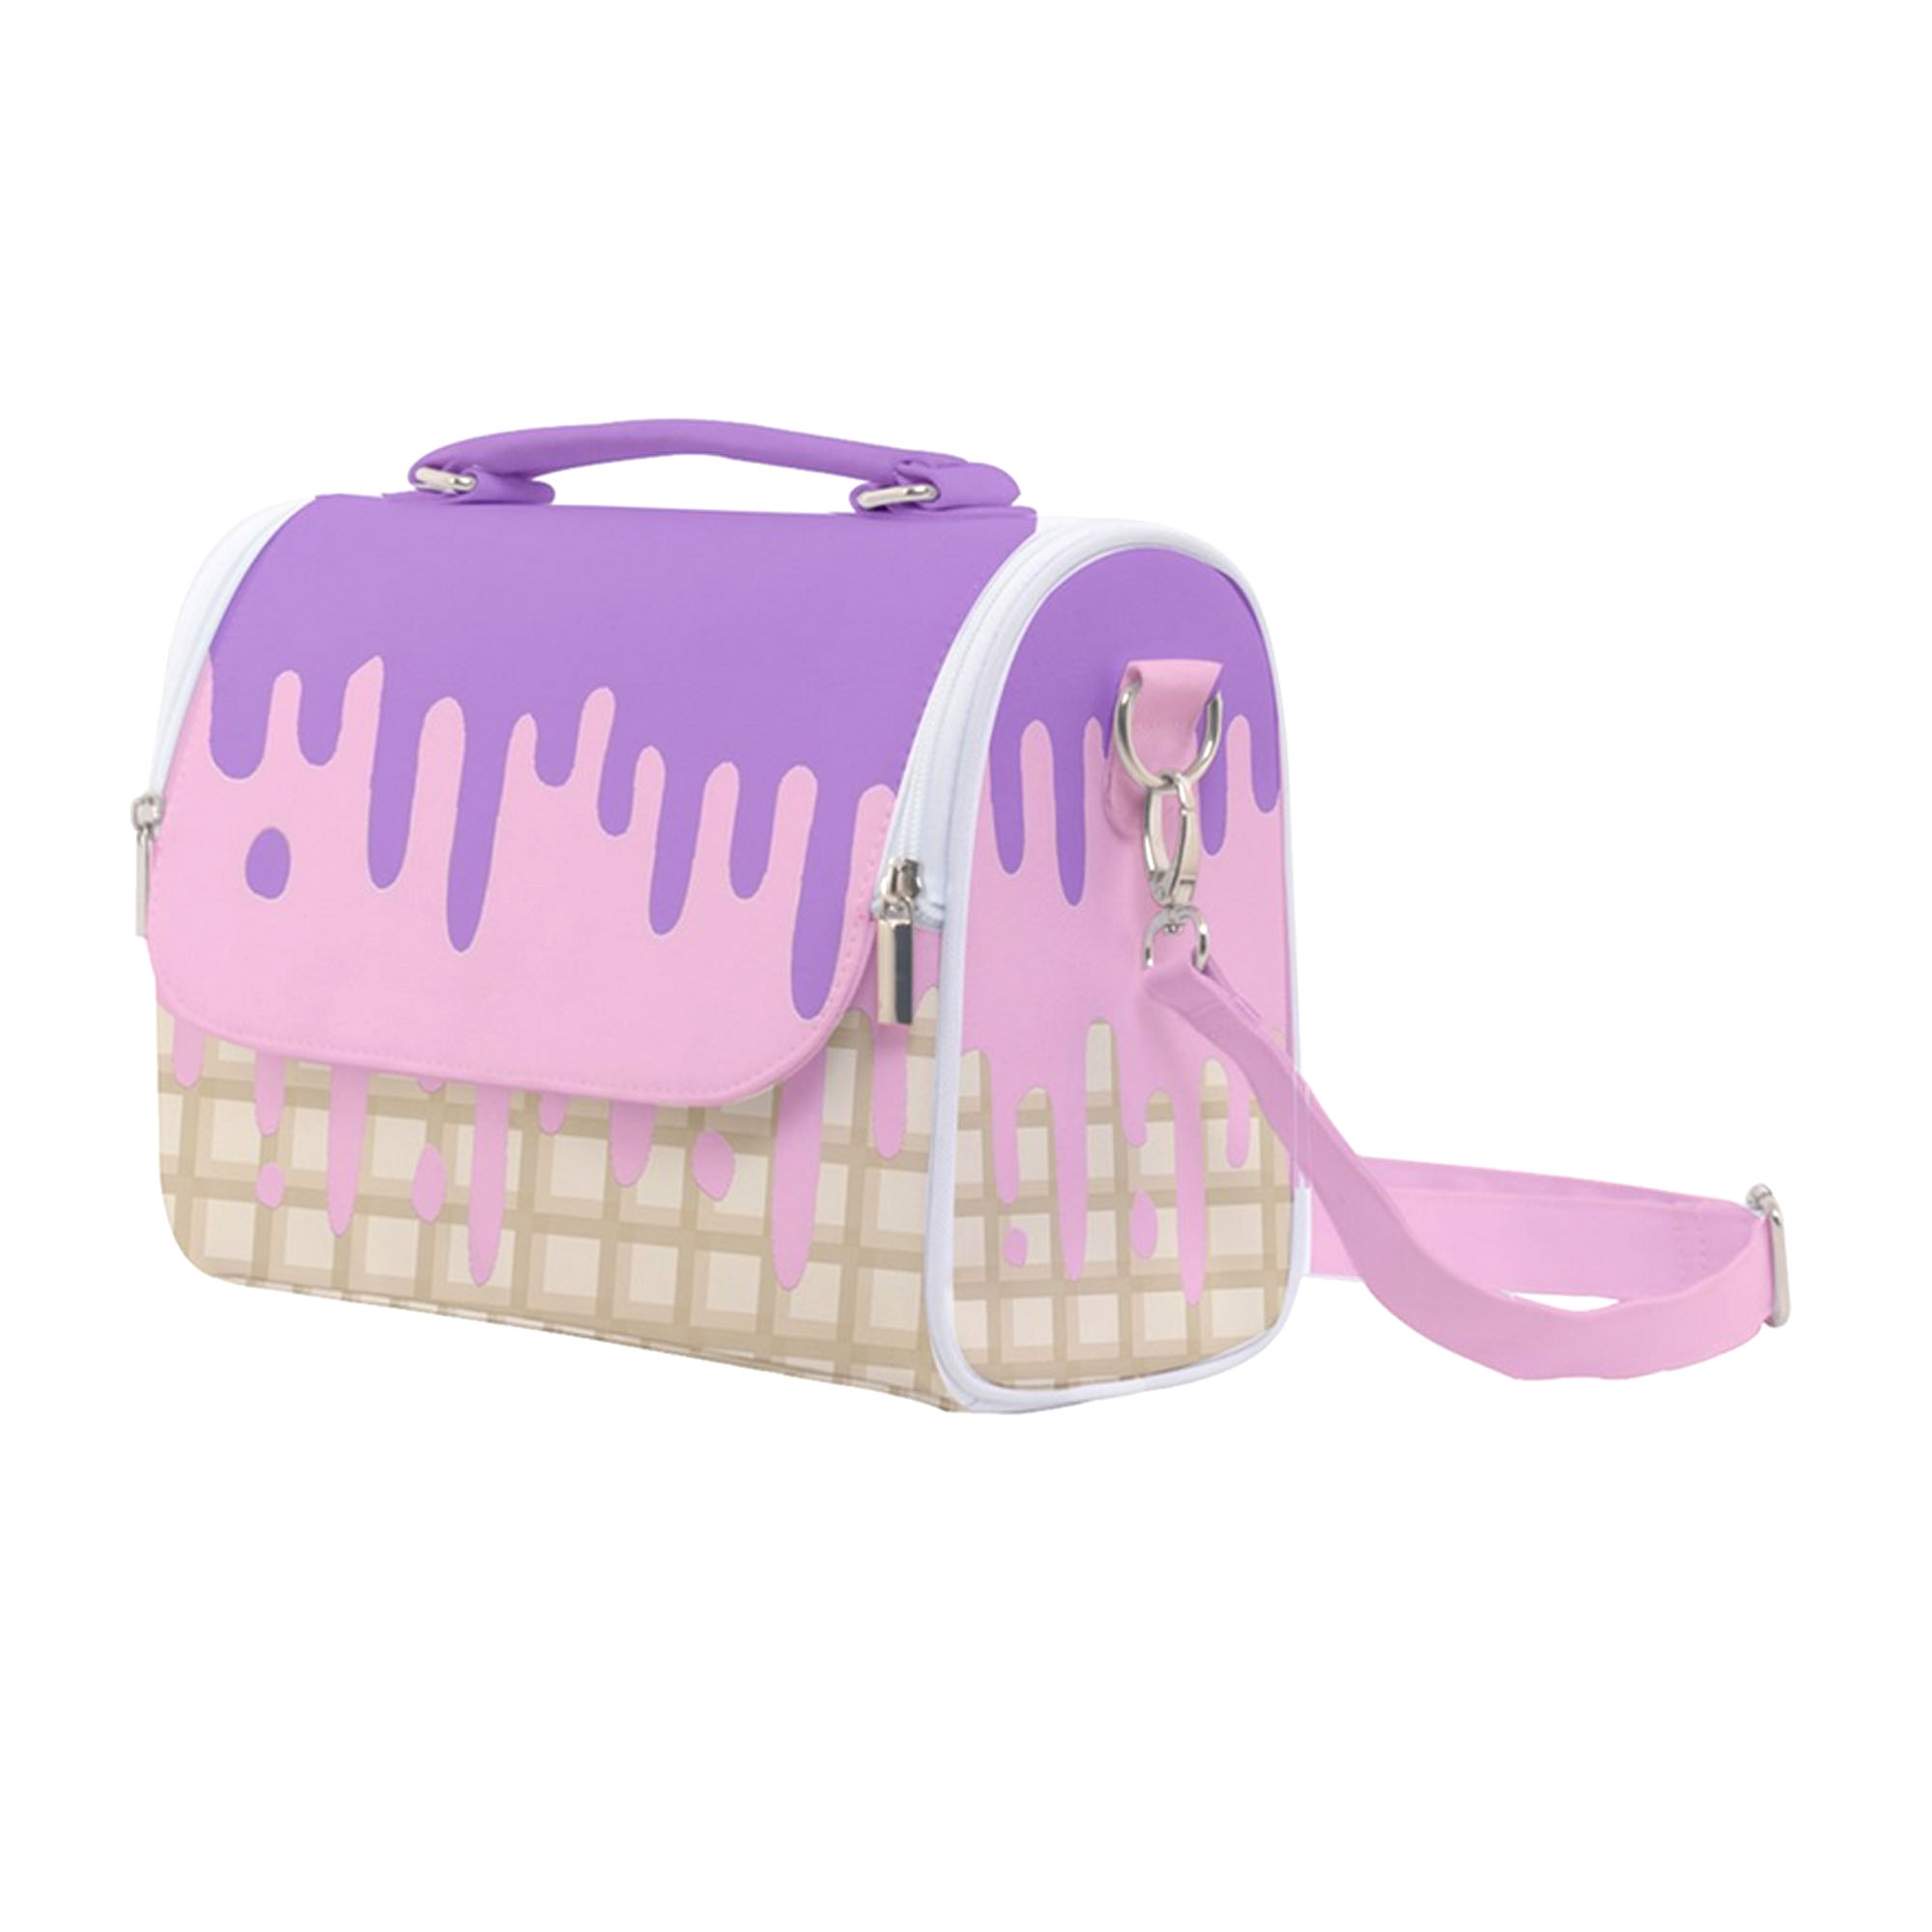 Kawaii Ice Cream Satchel Shoulder Bag - Purple